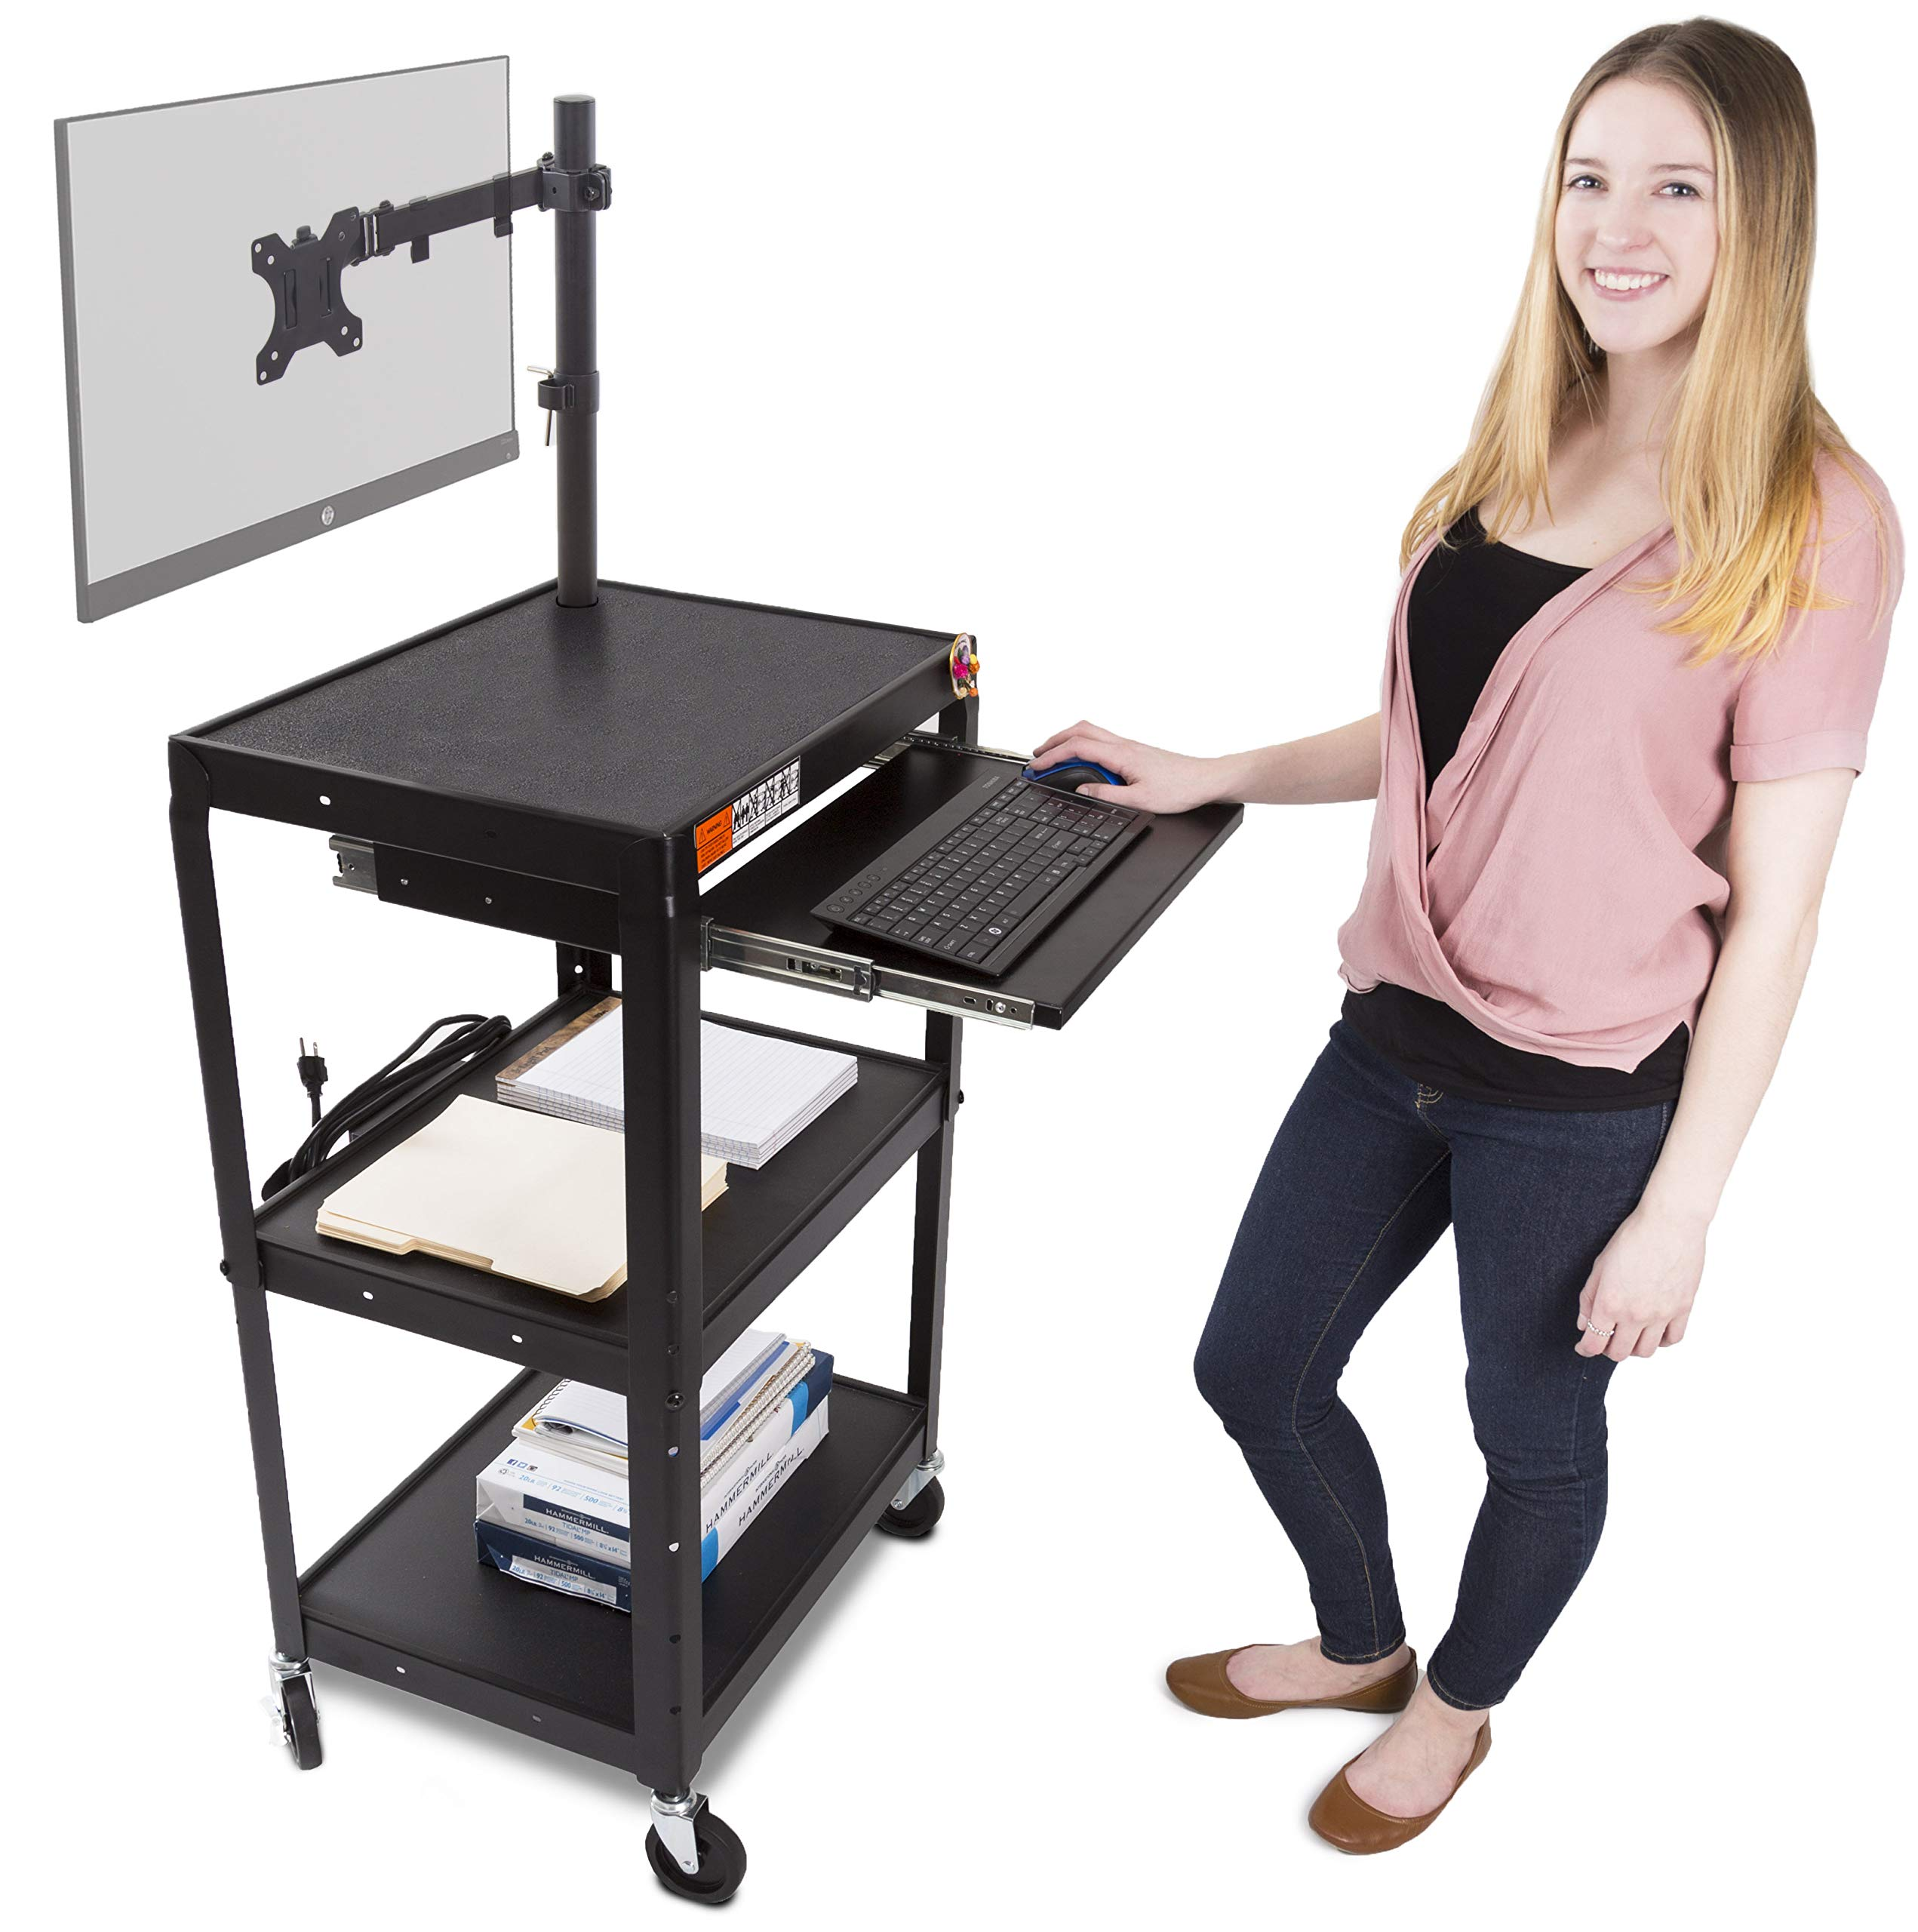 Line Leader AV Cart with Keyboard Tray and Monitor Mount | Mobile Workstation/Presentation Cart with Monitor Arm | Take Your Office On-The-Go with Our Stand Up Computer Cart! (Black / 24'' x 18'')